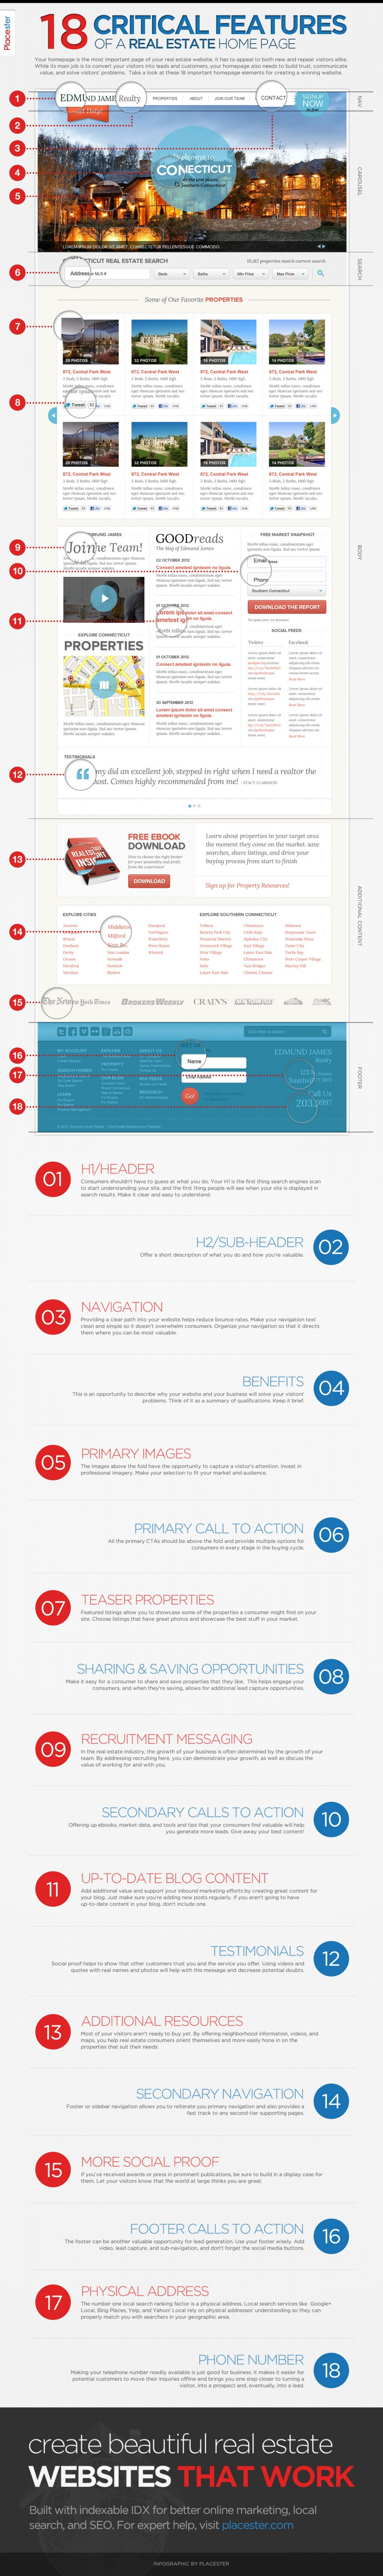 Listing of Features for Designing an Effective Website